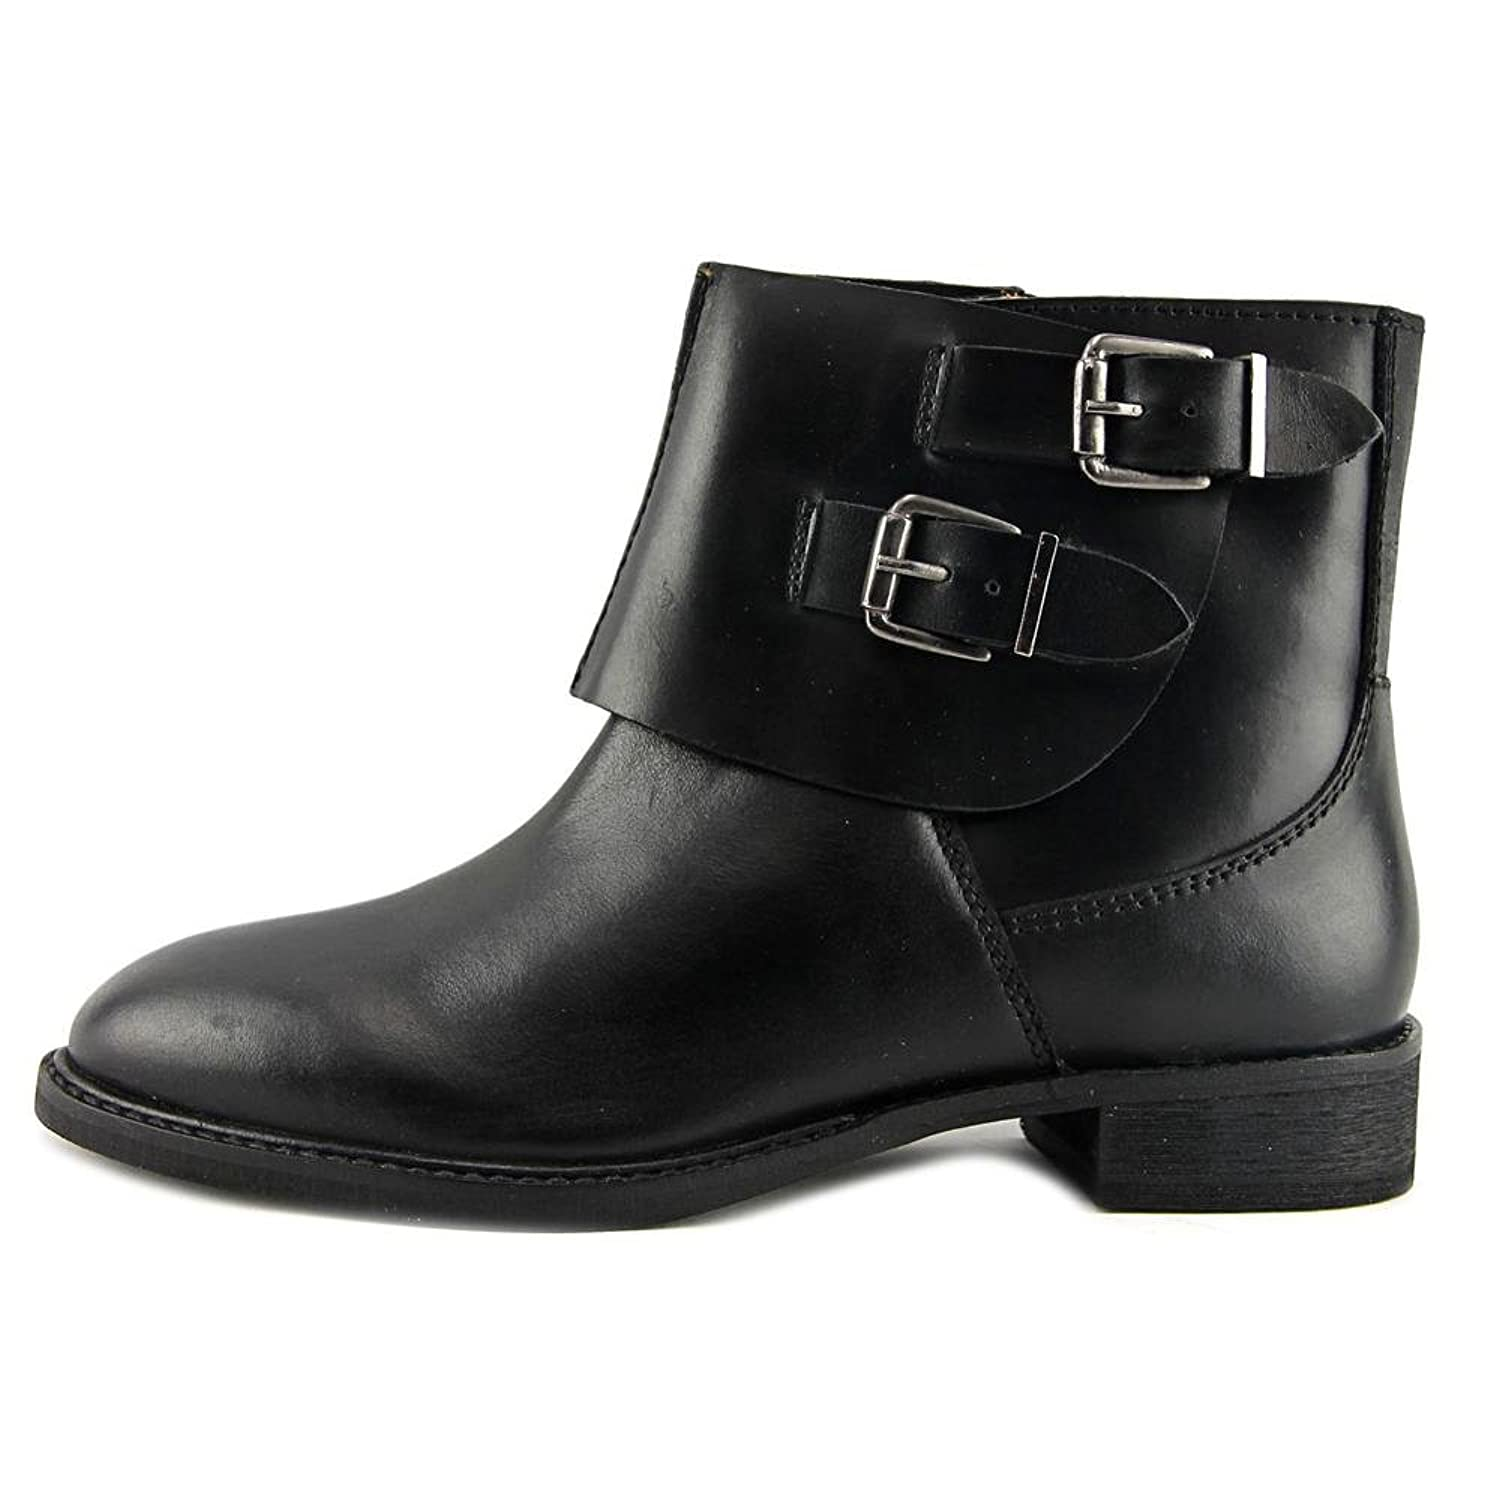 Discount Sale Onfire Leather Buckle Boots Womens Black Online Store